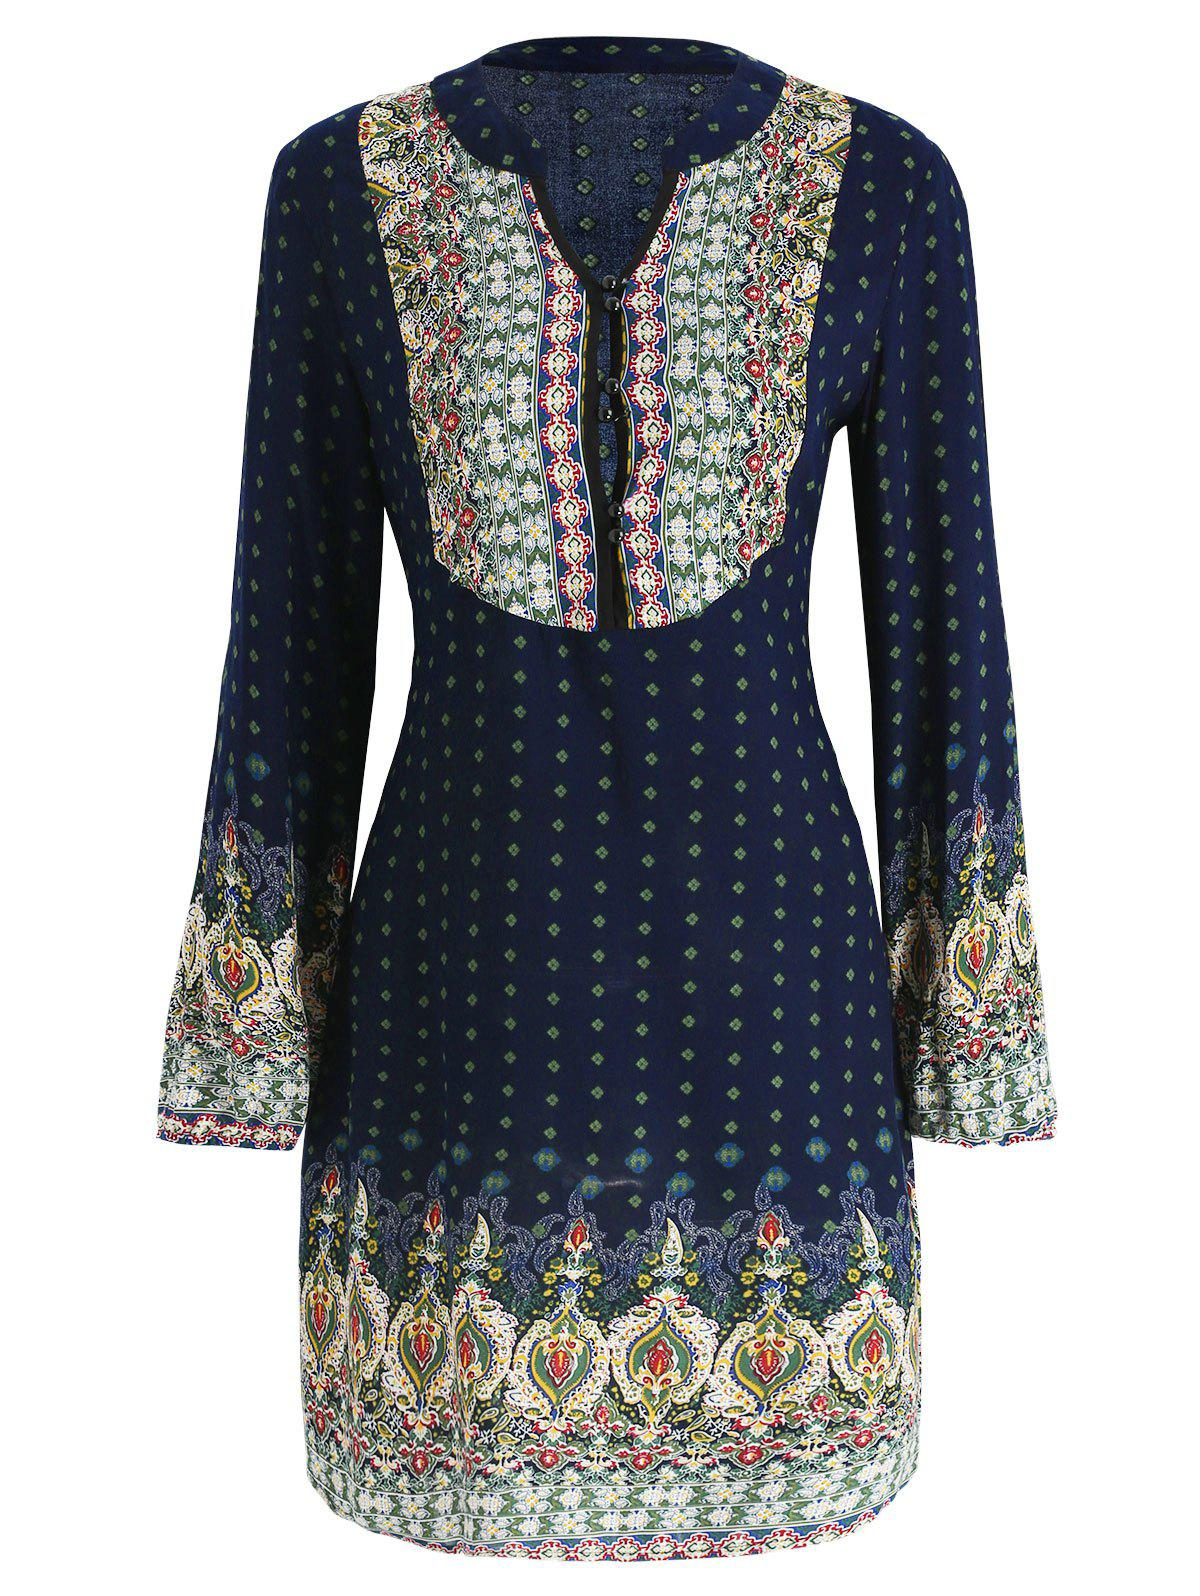 Chic Buttoned Ethnic Print Dress